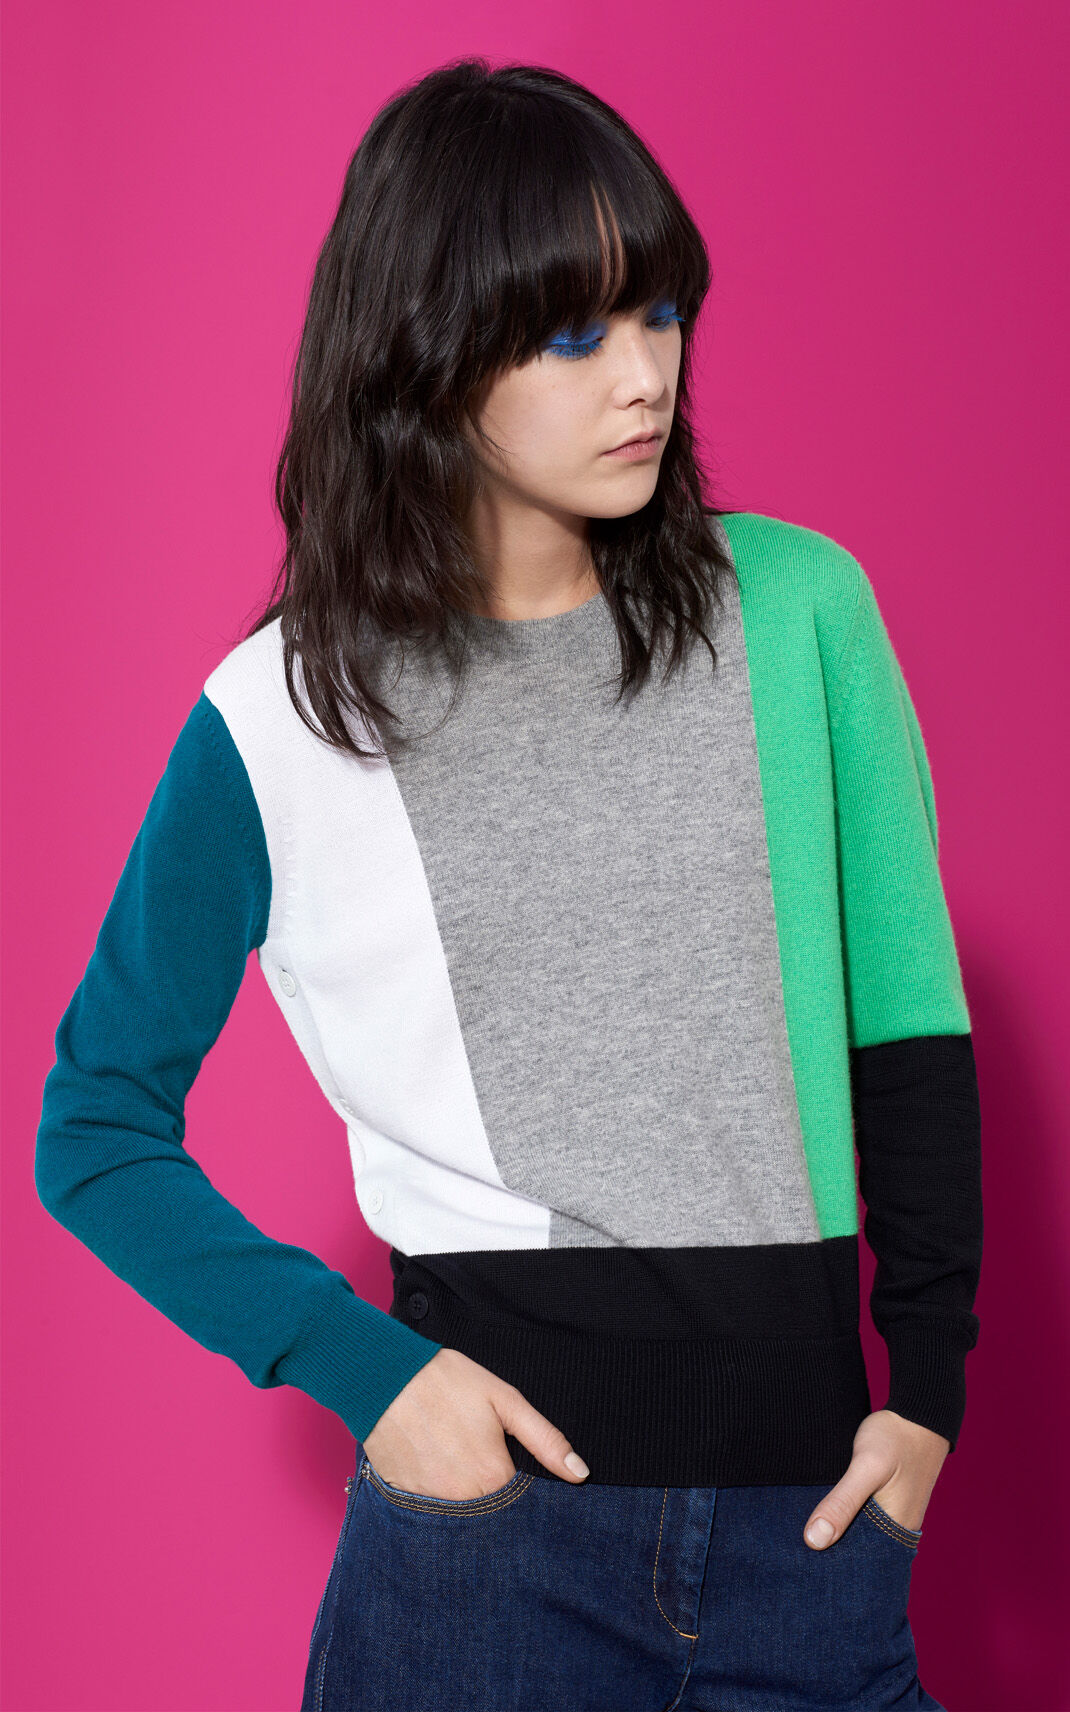 Color-Block Cashmere Sweater for Kenzo | Kenzo.com